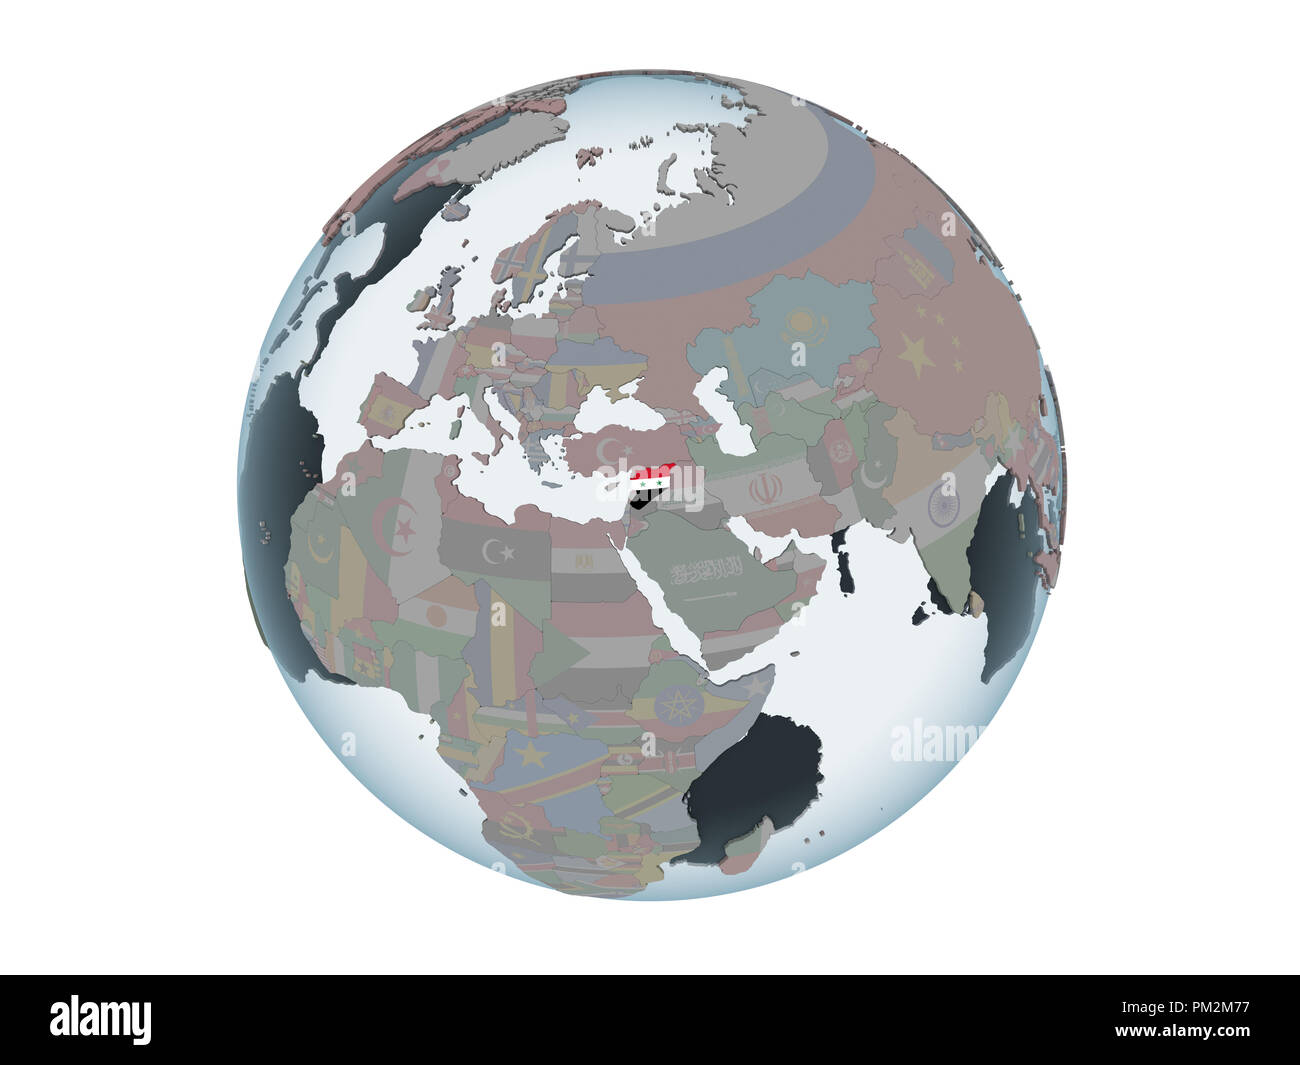 Syria on political globe with embedded flag. 3D illustration isolated on white background. - Stock Image